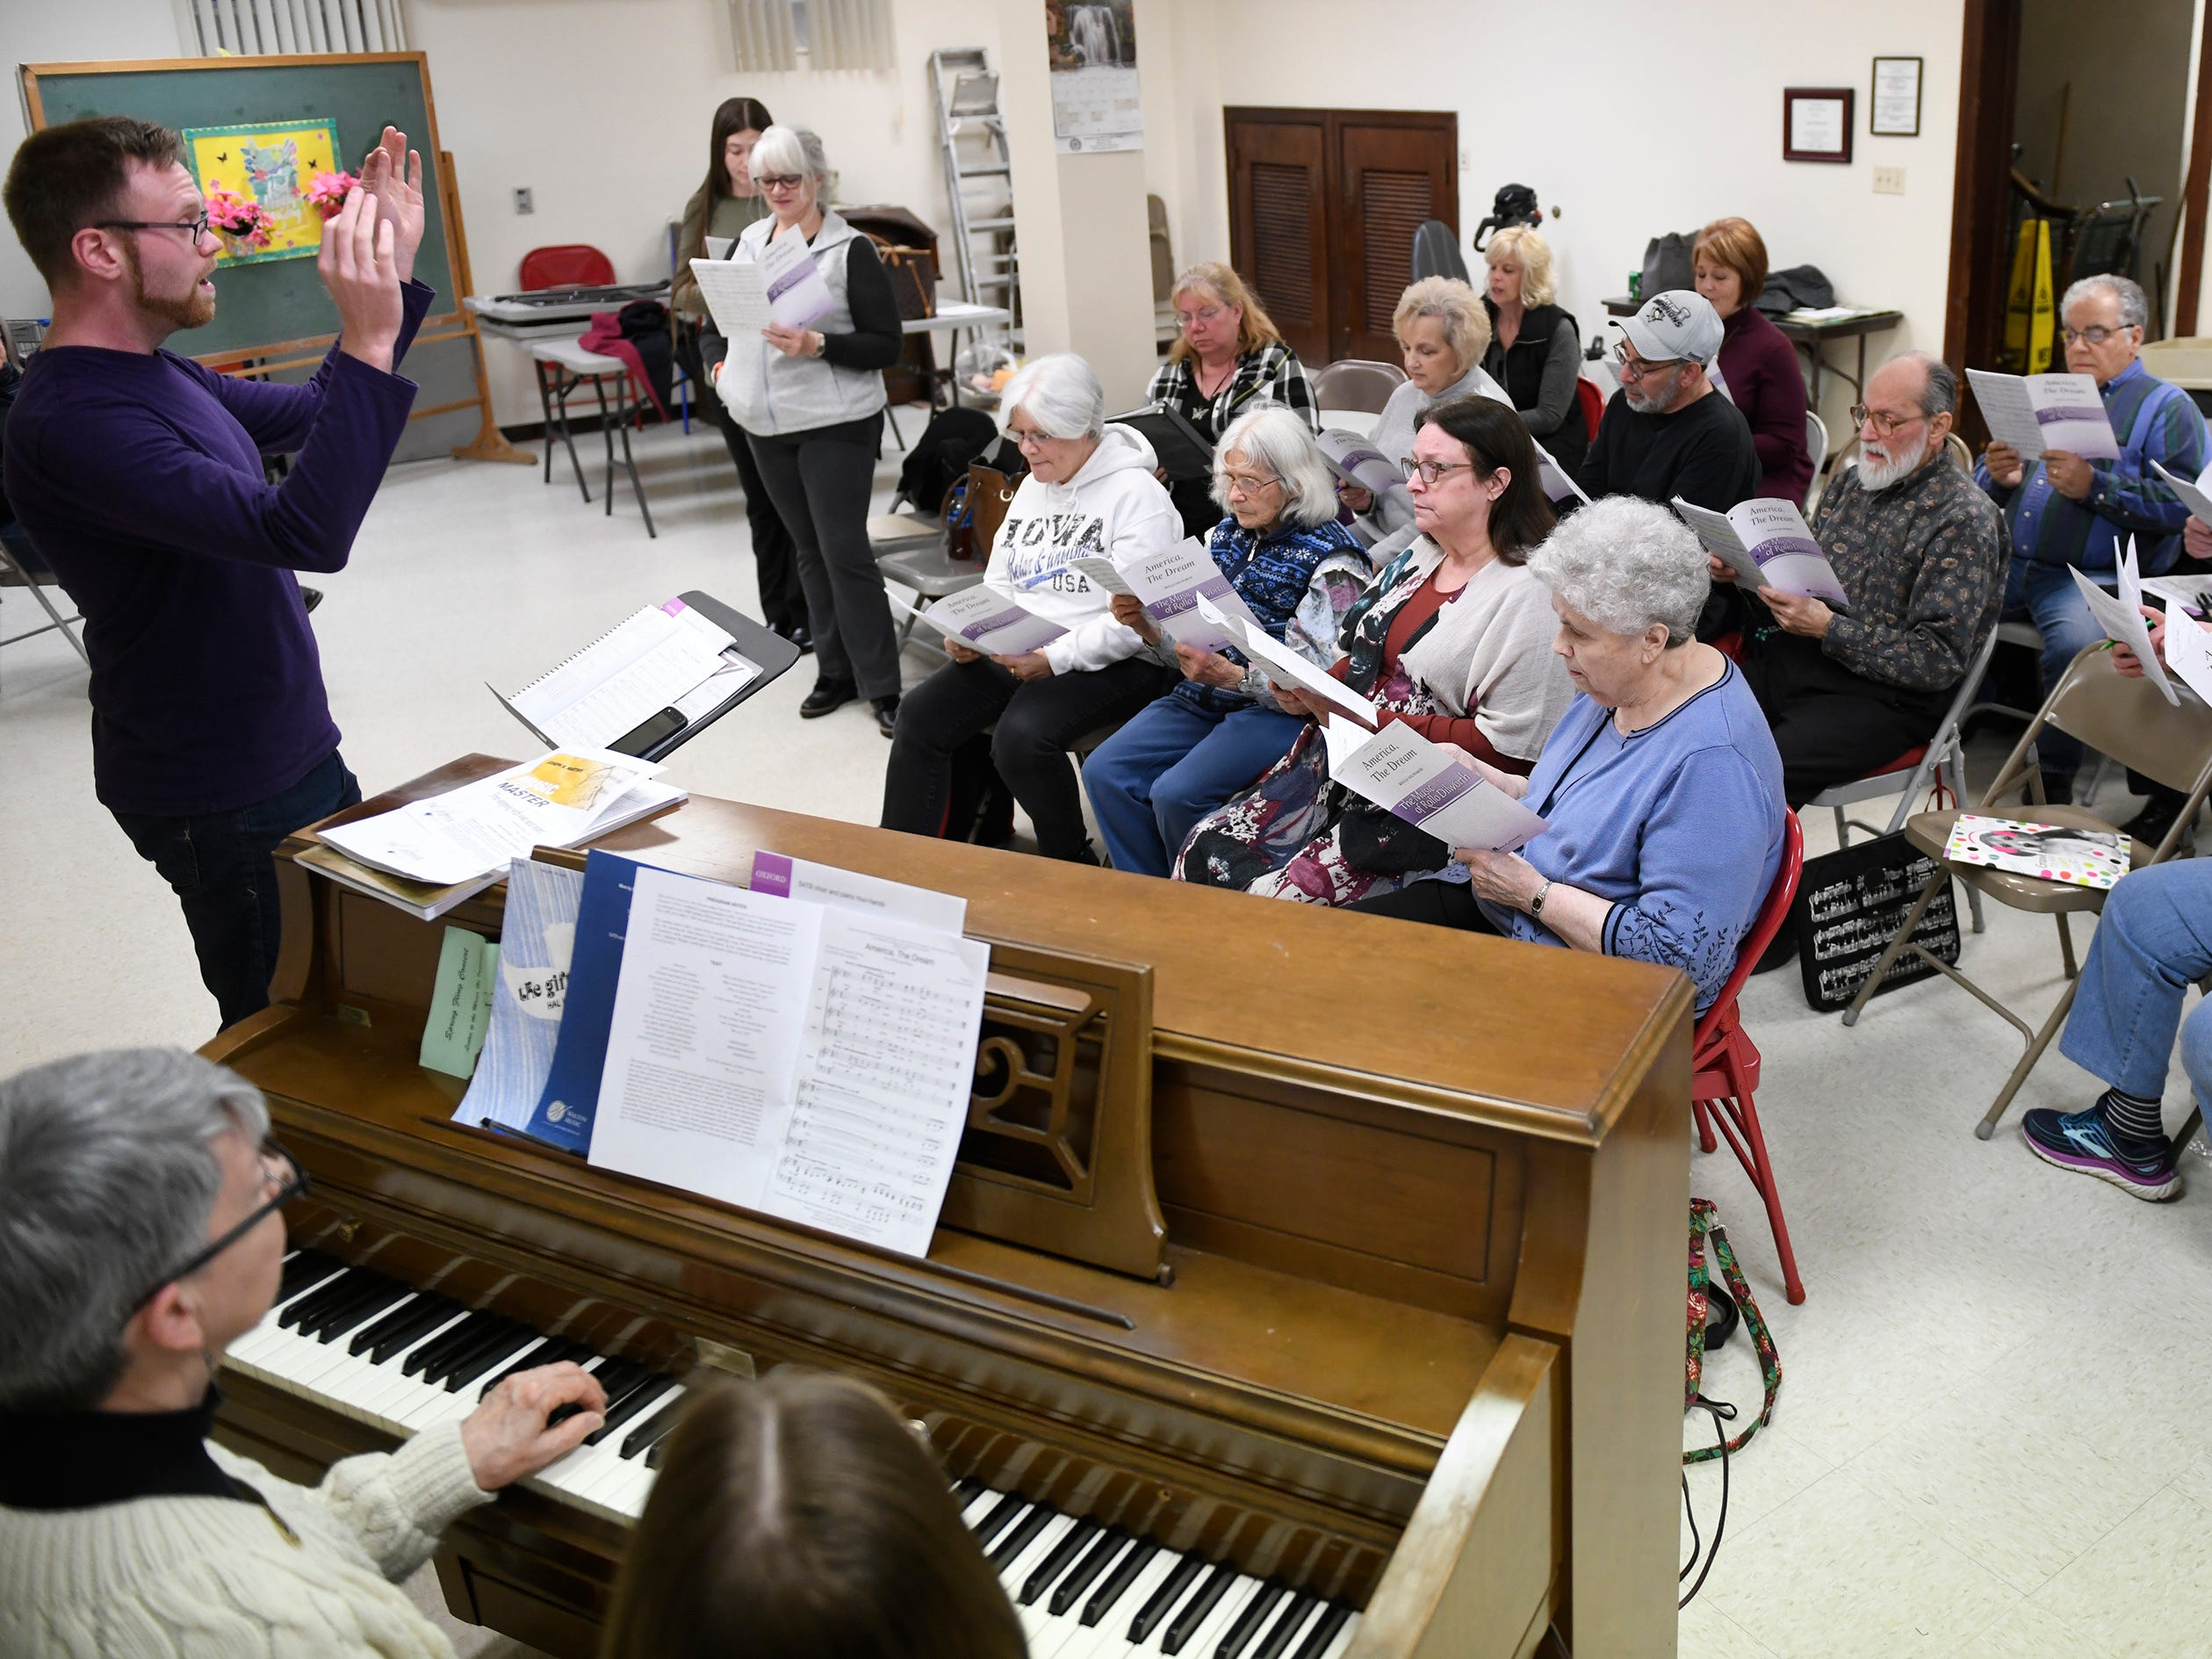 The Singing Ambassadors, under the direction of Kyle Sheppard, rehearse at the Vineland Senior Center. After 62 years of entertaining, the group is preparing for their final concert.